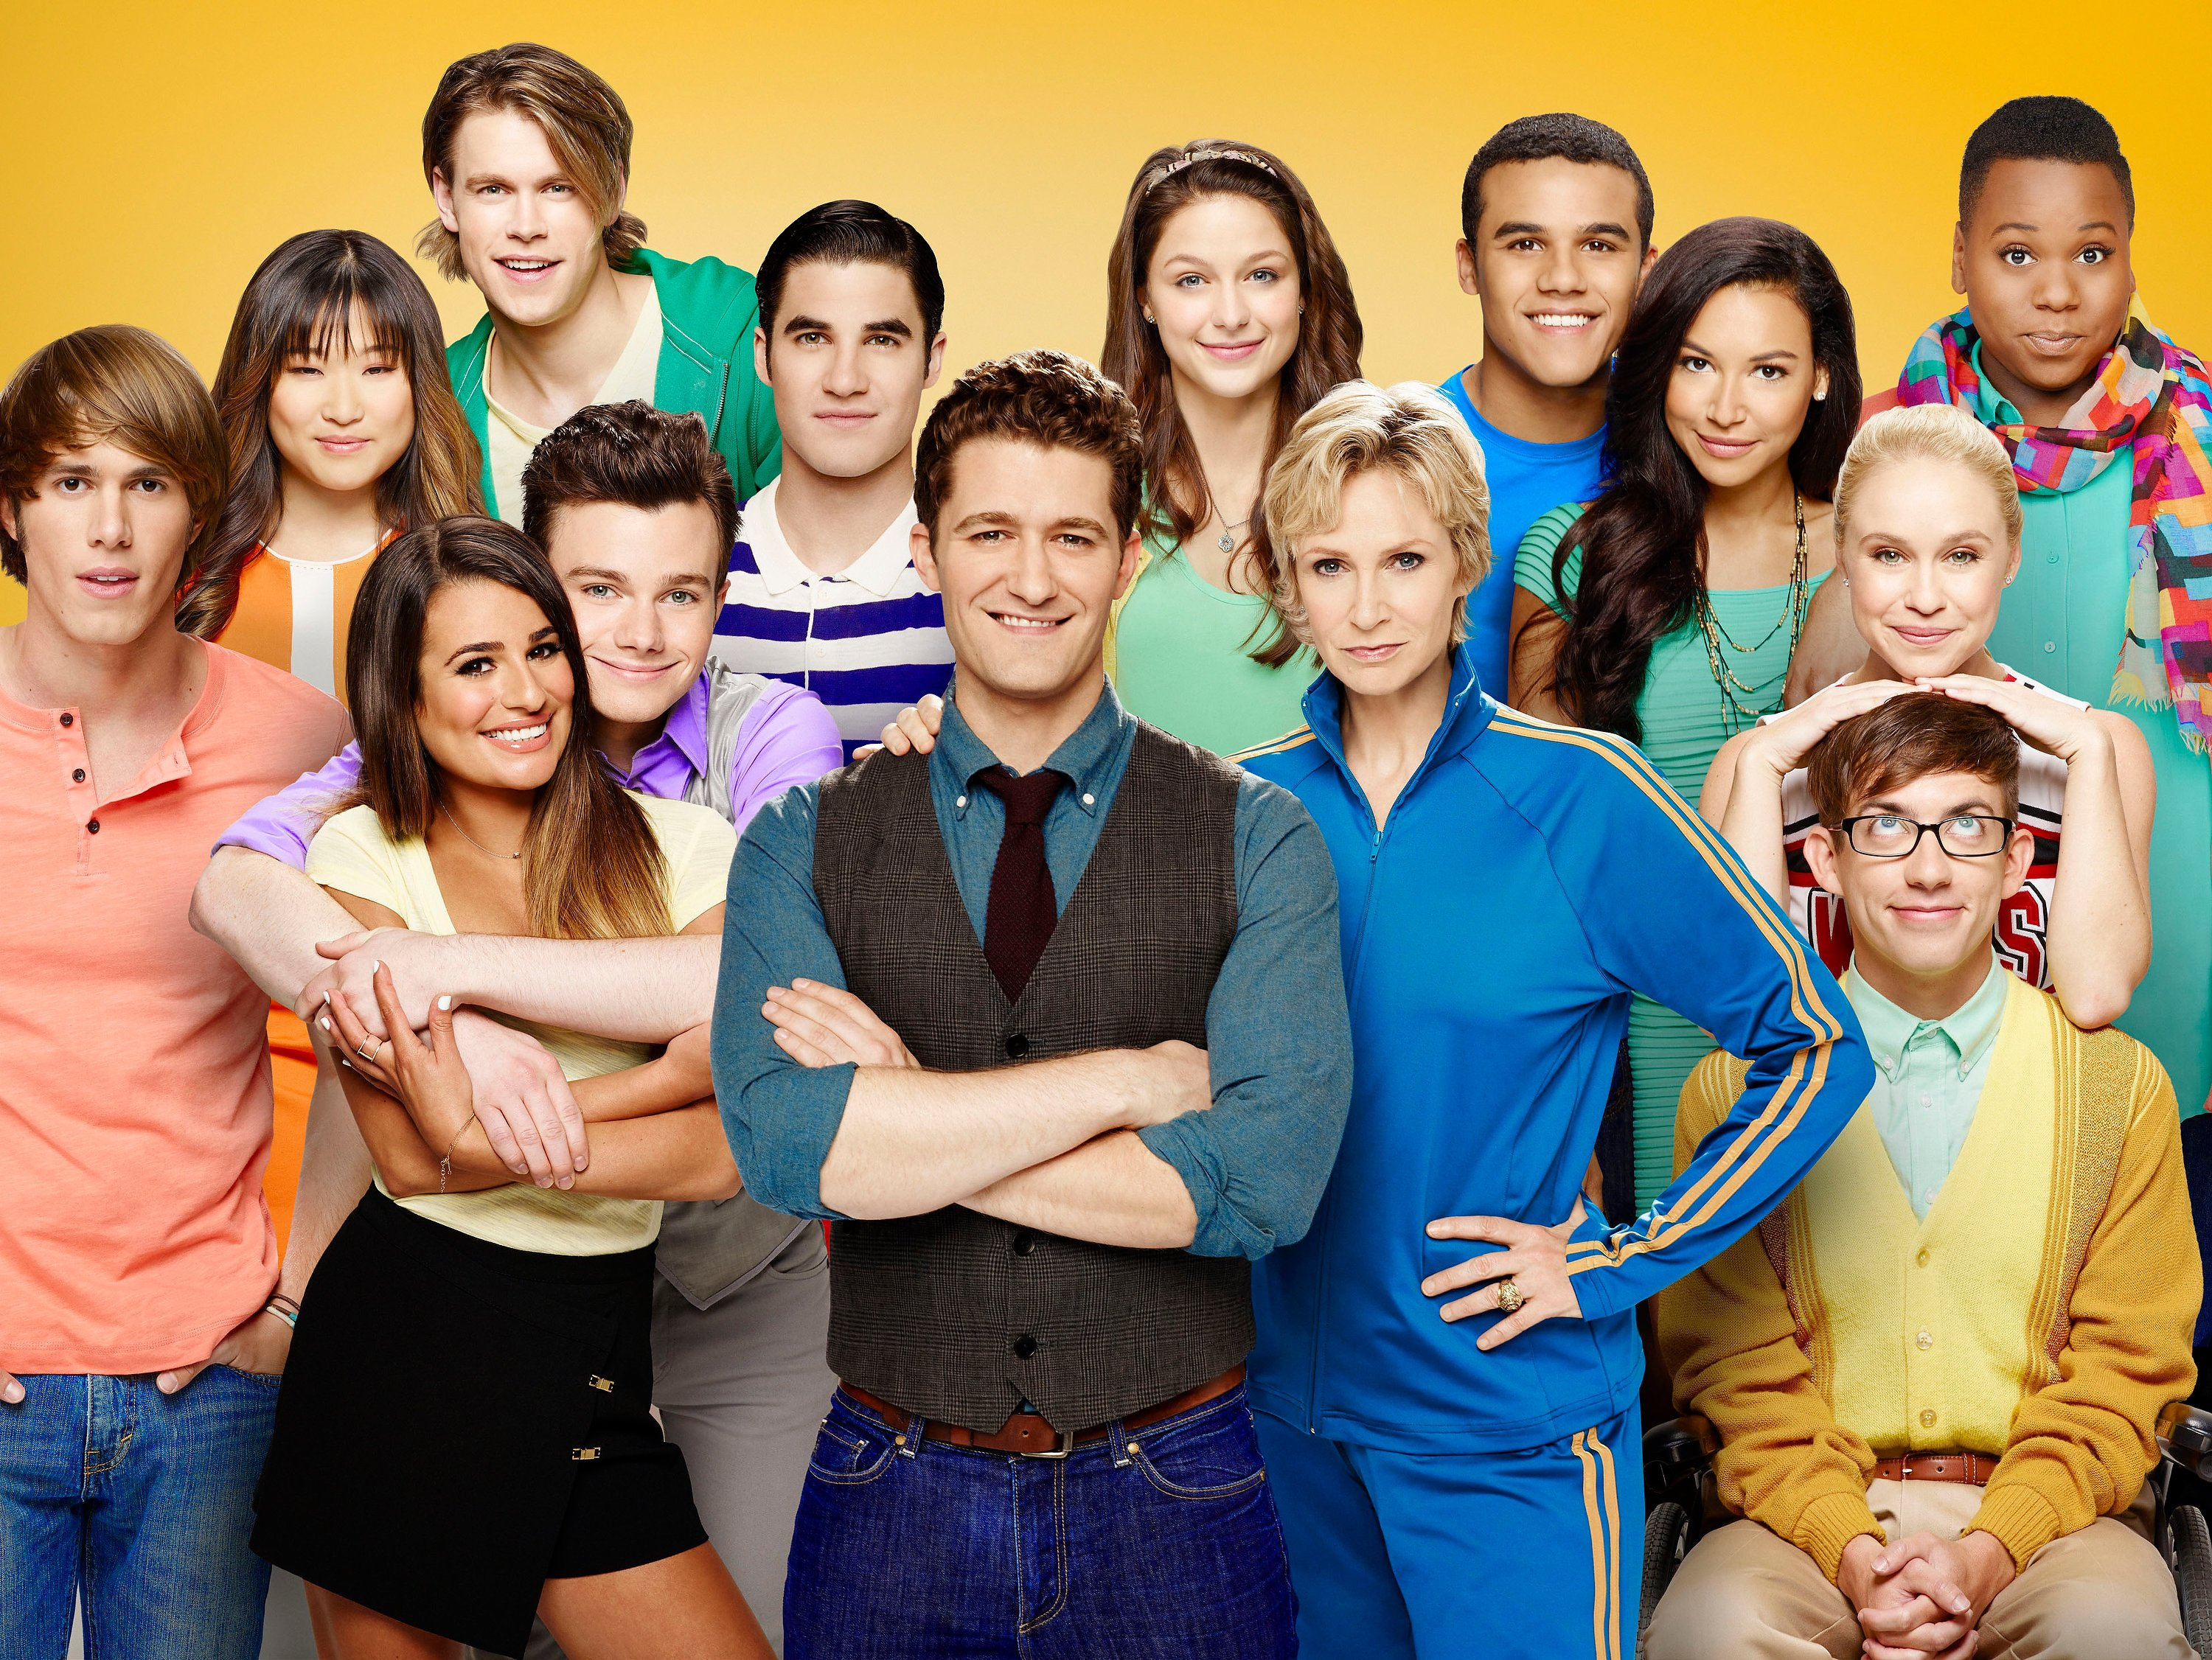 Image Source: Getty Images/The Glee cast by Fox